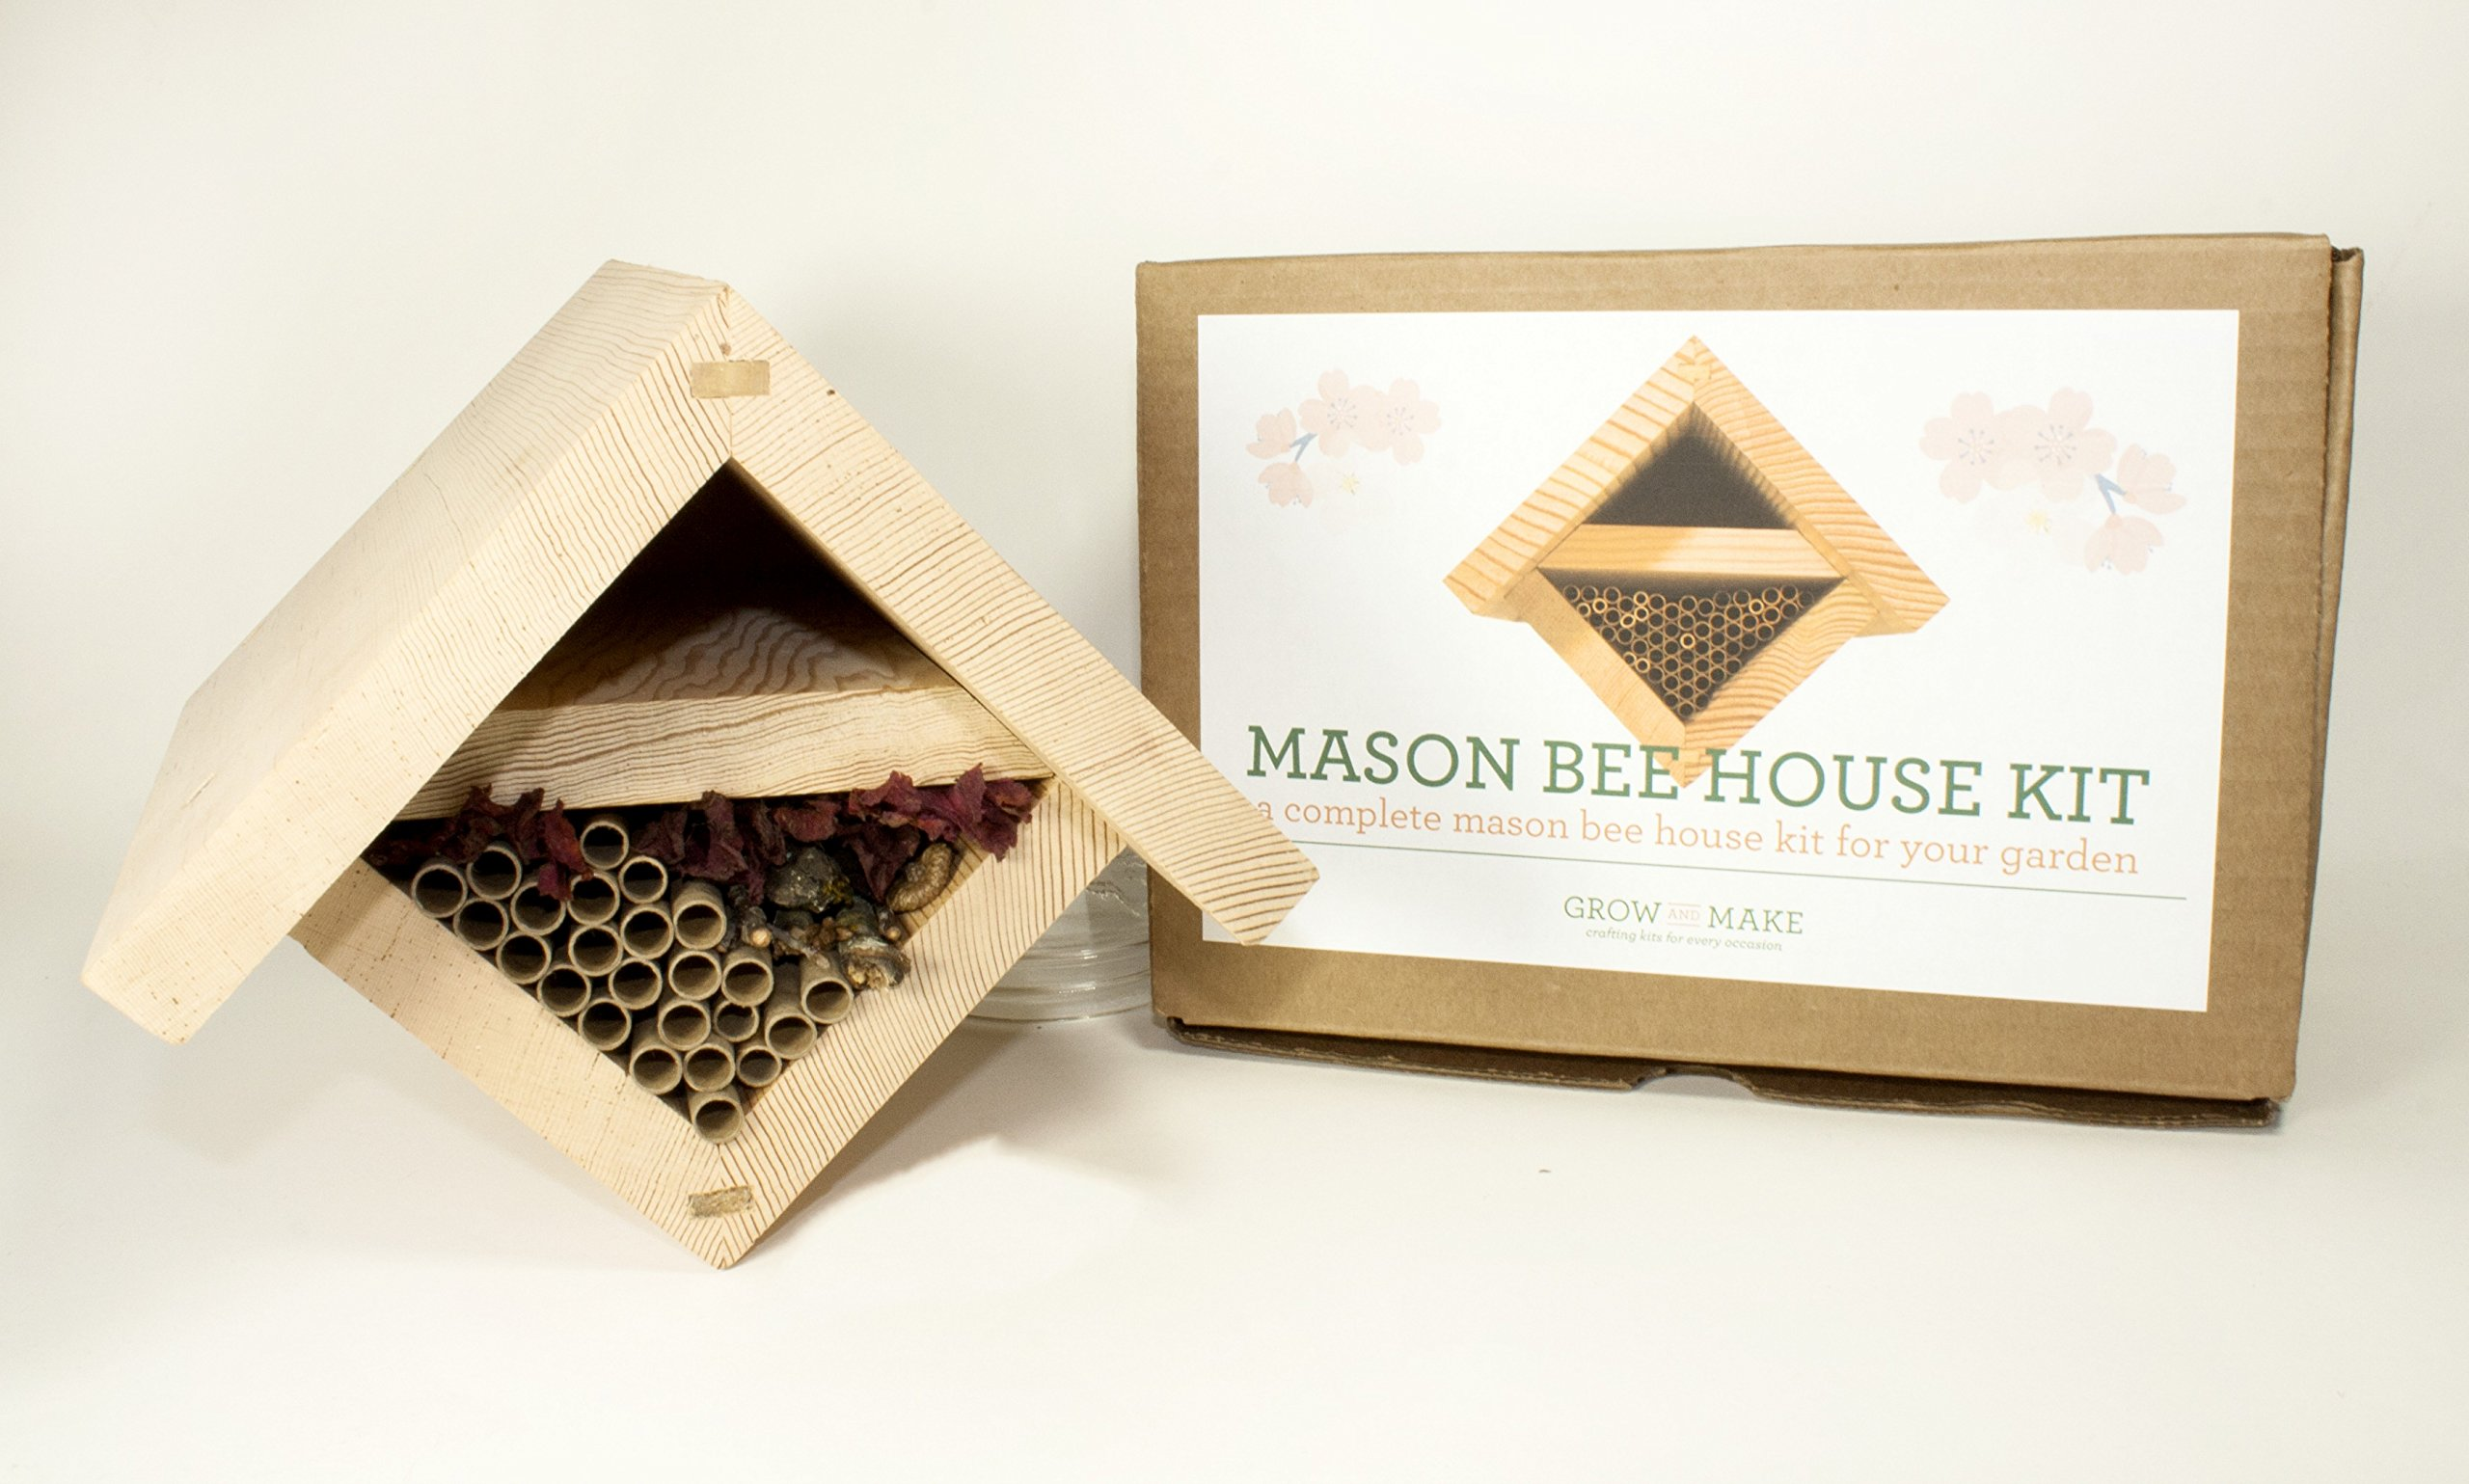 Grow and Make DIY Mason Bee House Hive Kit with 24 Mason bee Tubes - Help Attract Native pollinators to Your Garden!